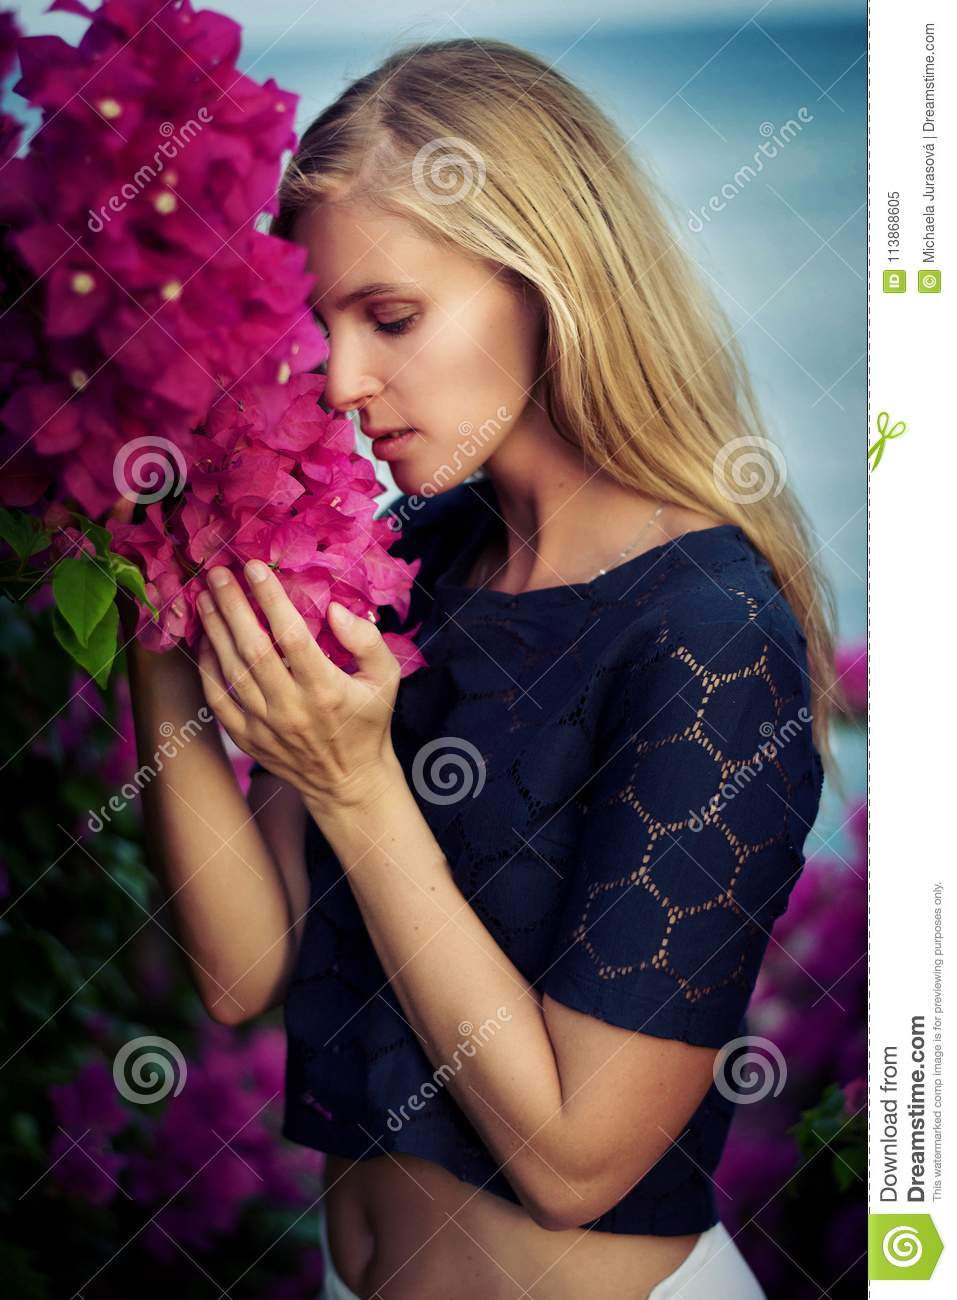 Blonde Caucasian Woman Wearing Dark Blue Lace Top And White Skirt In Crop Posing Between Pink Flowers By The Sea Egypt Long Hair Smile